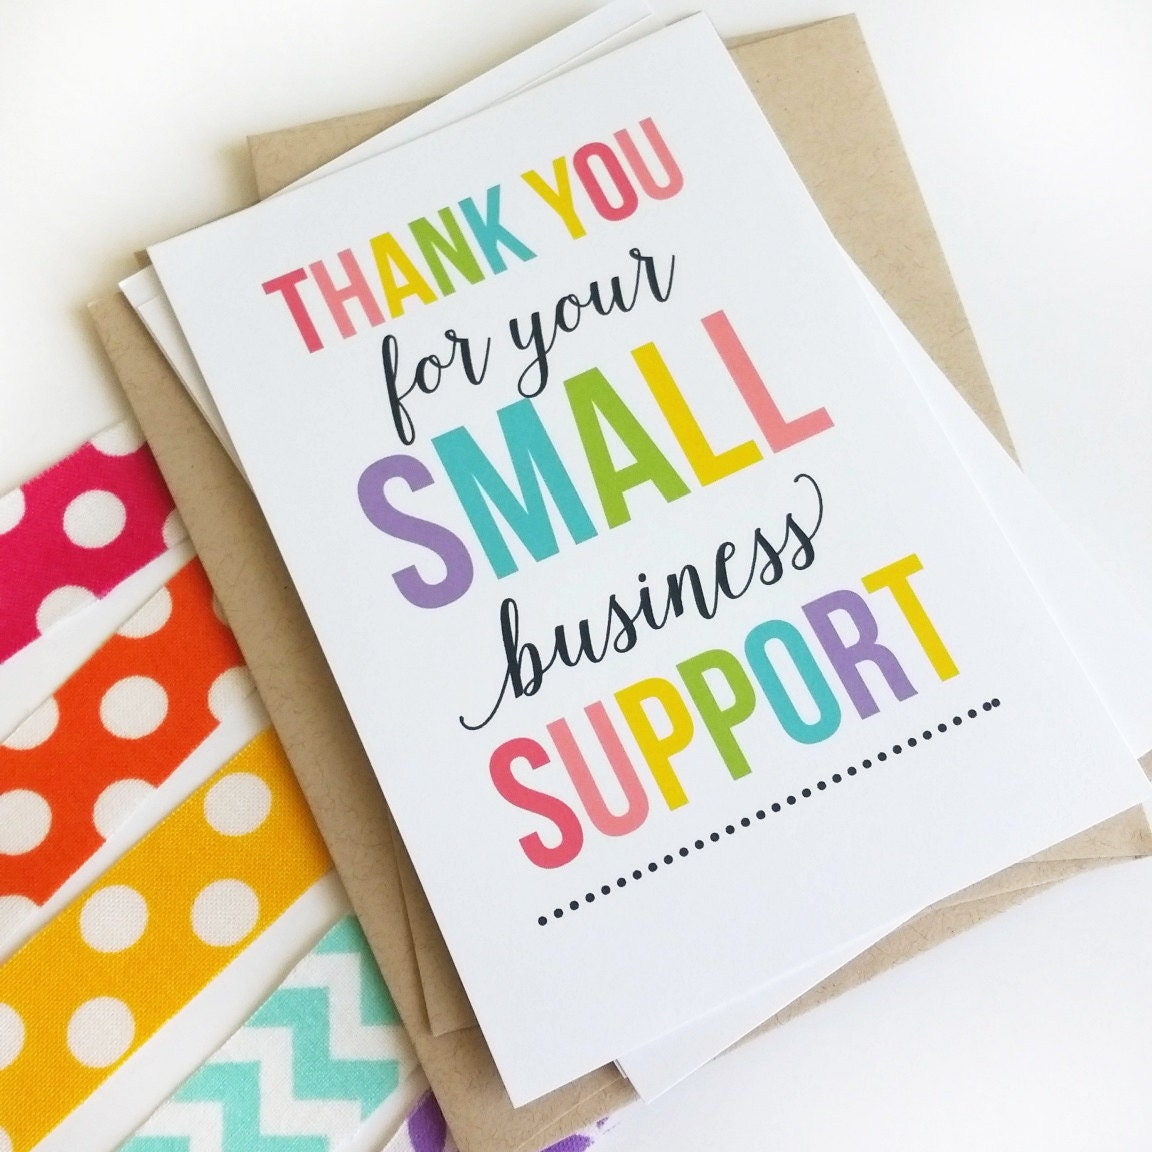 Thank You For Your Order Small Business Thank You Cards